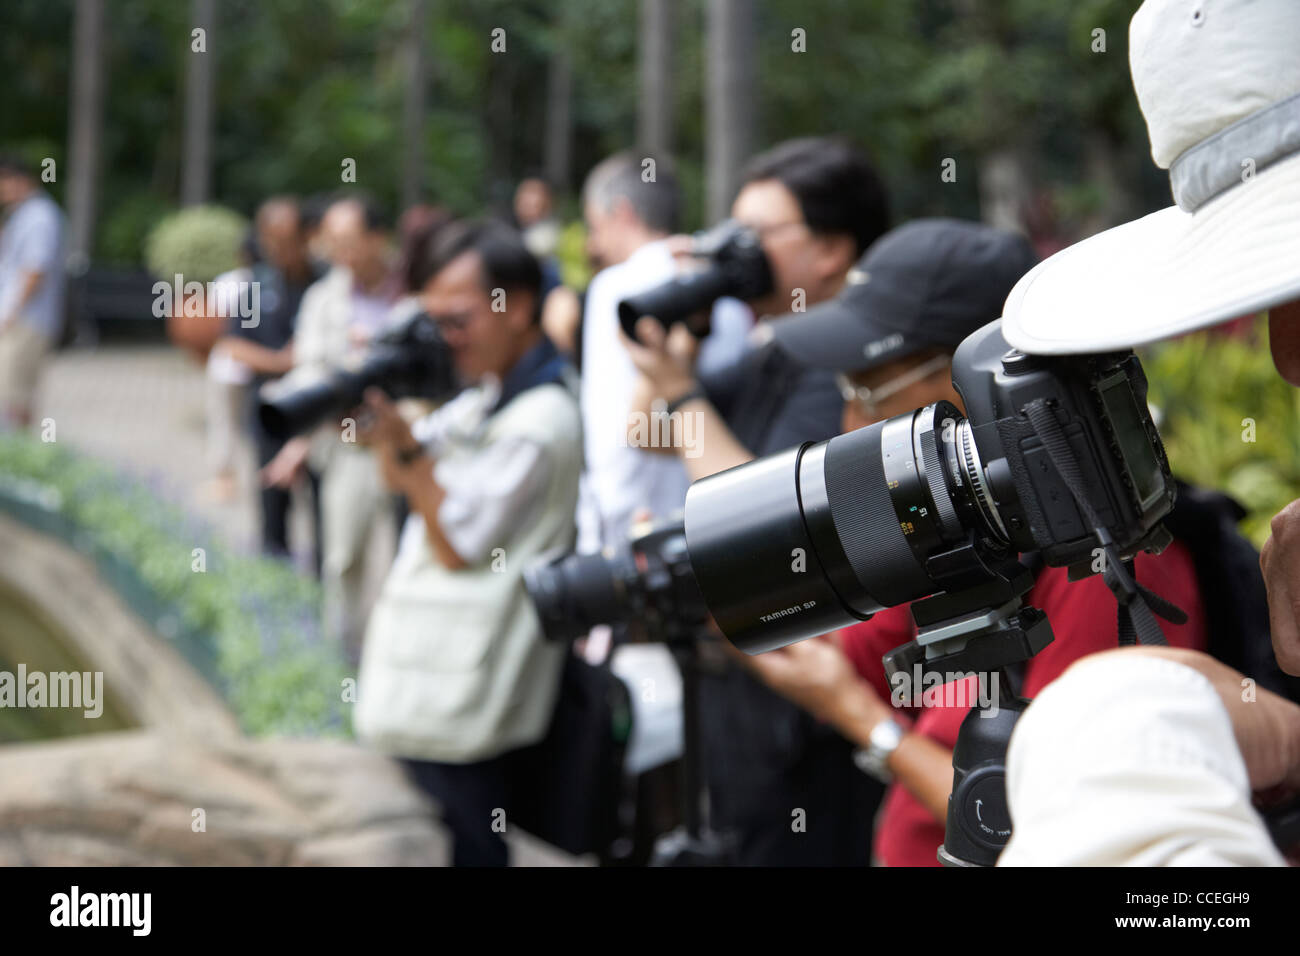 row of chinese photographers using telephoto lenses in hong kong park central hksar china asia - Stock Image